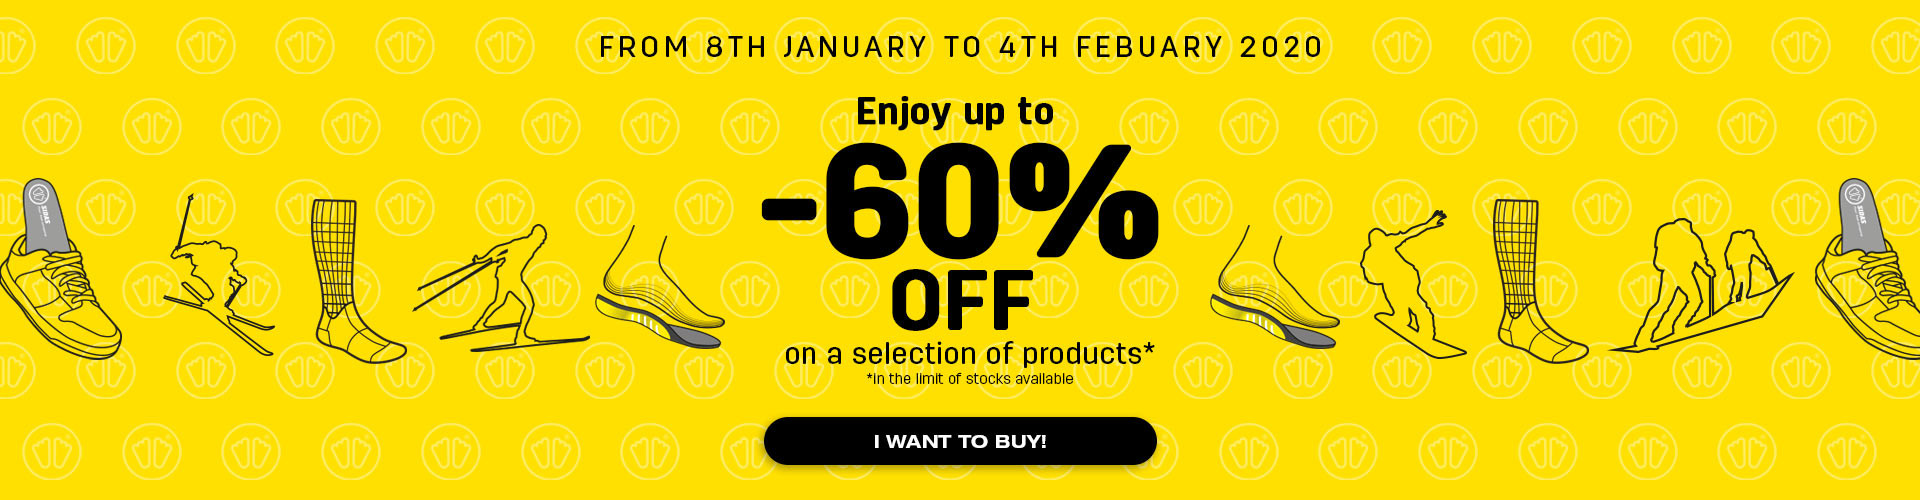 Winter Sales: enjoy up to 60% off!